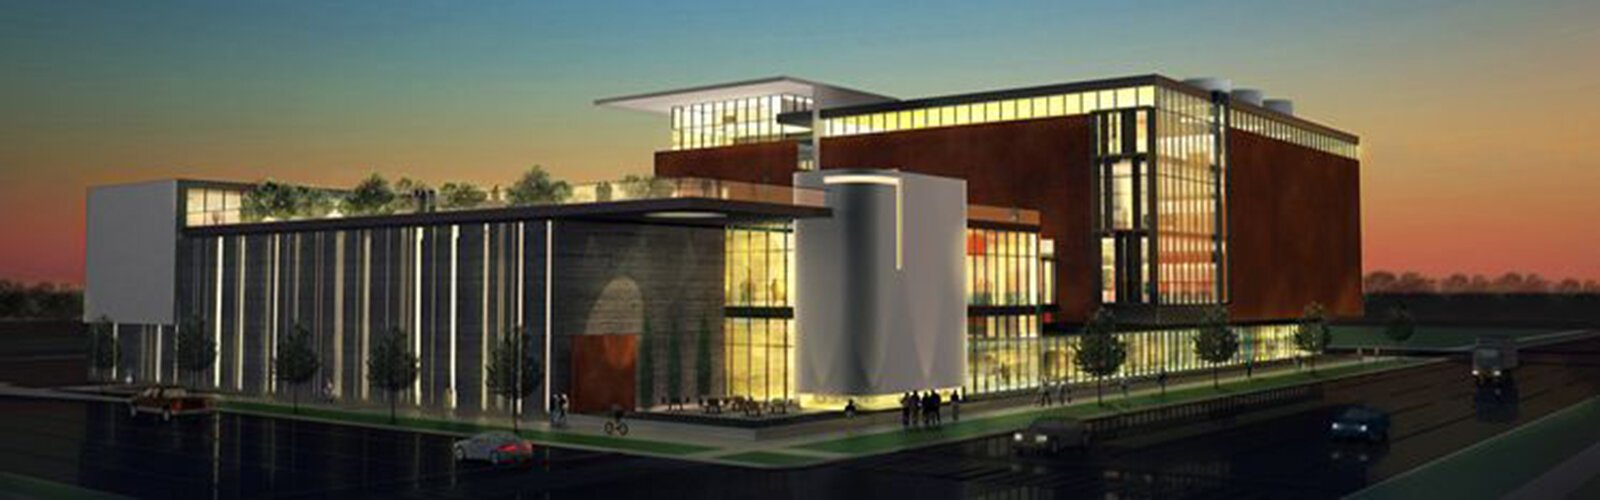 New Arts And Crafts Museum Will Add To St Pete S Creative Vibe